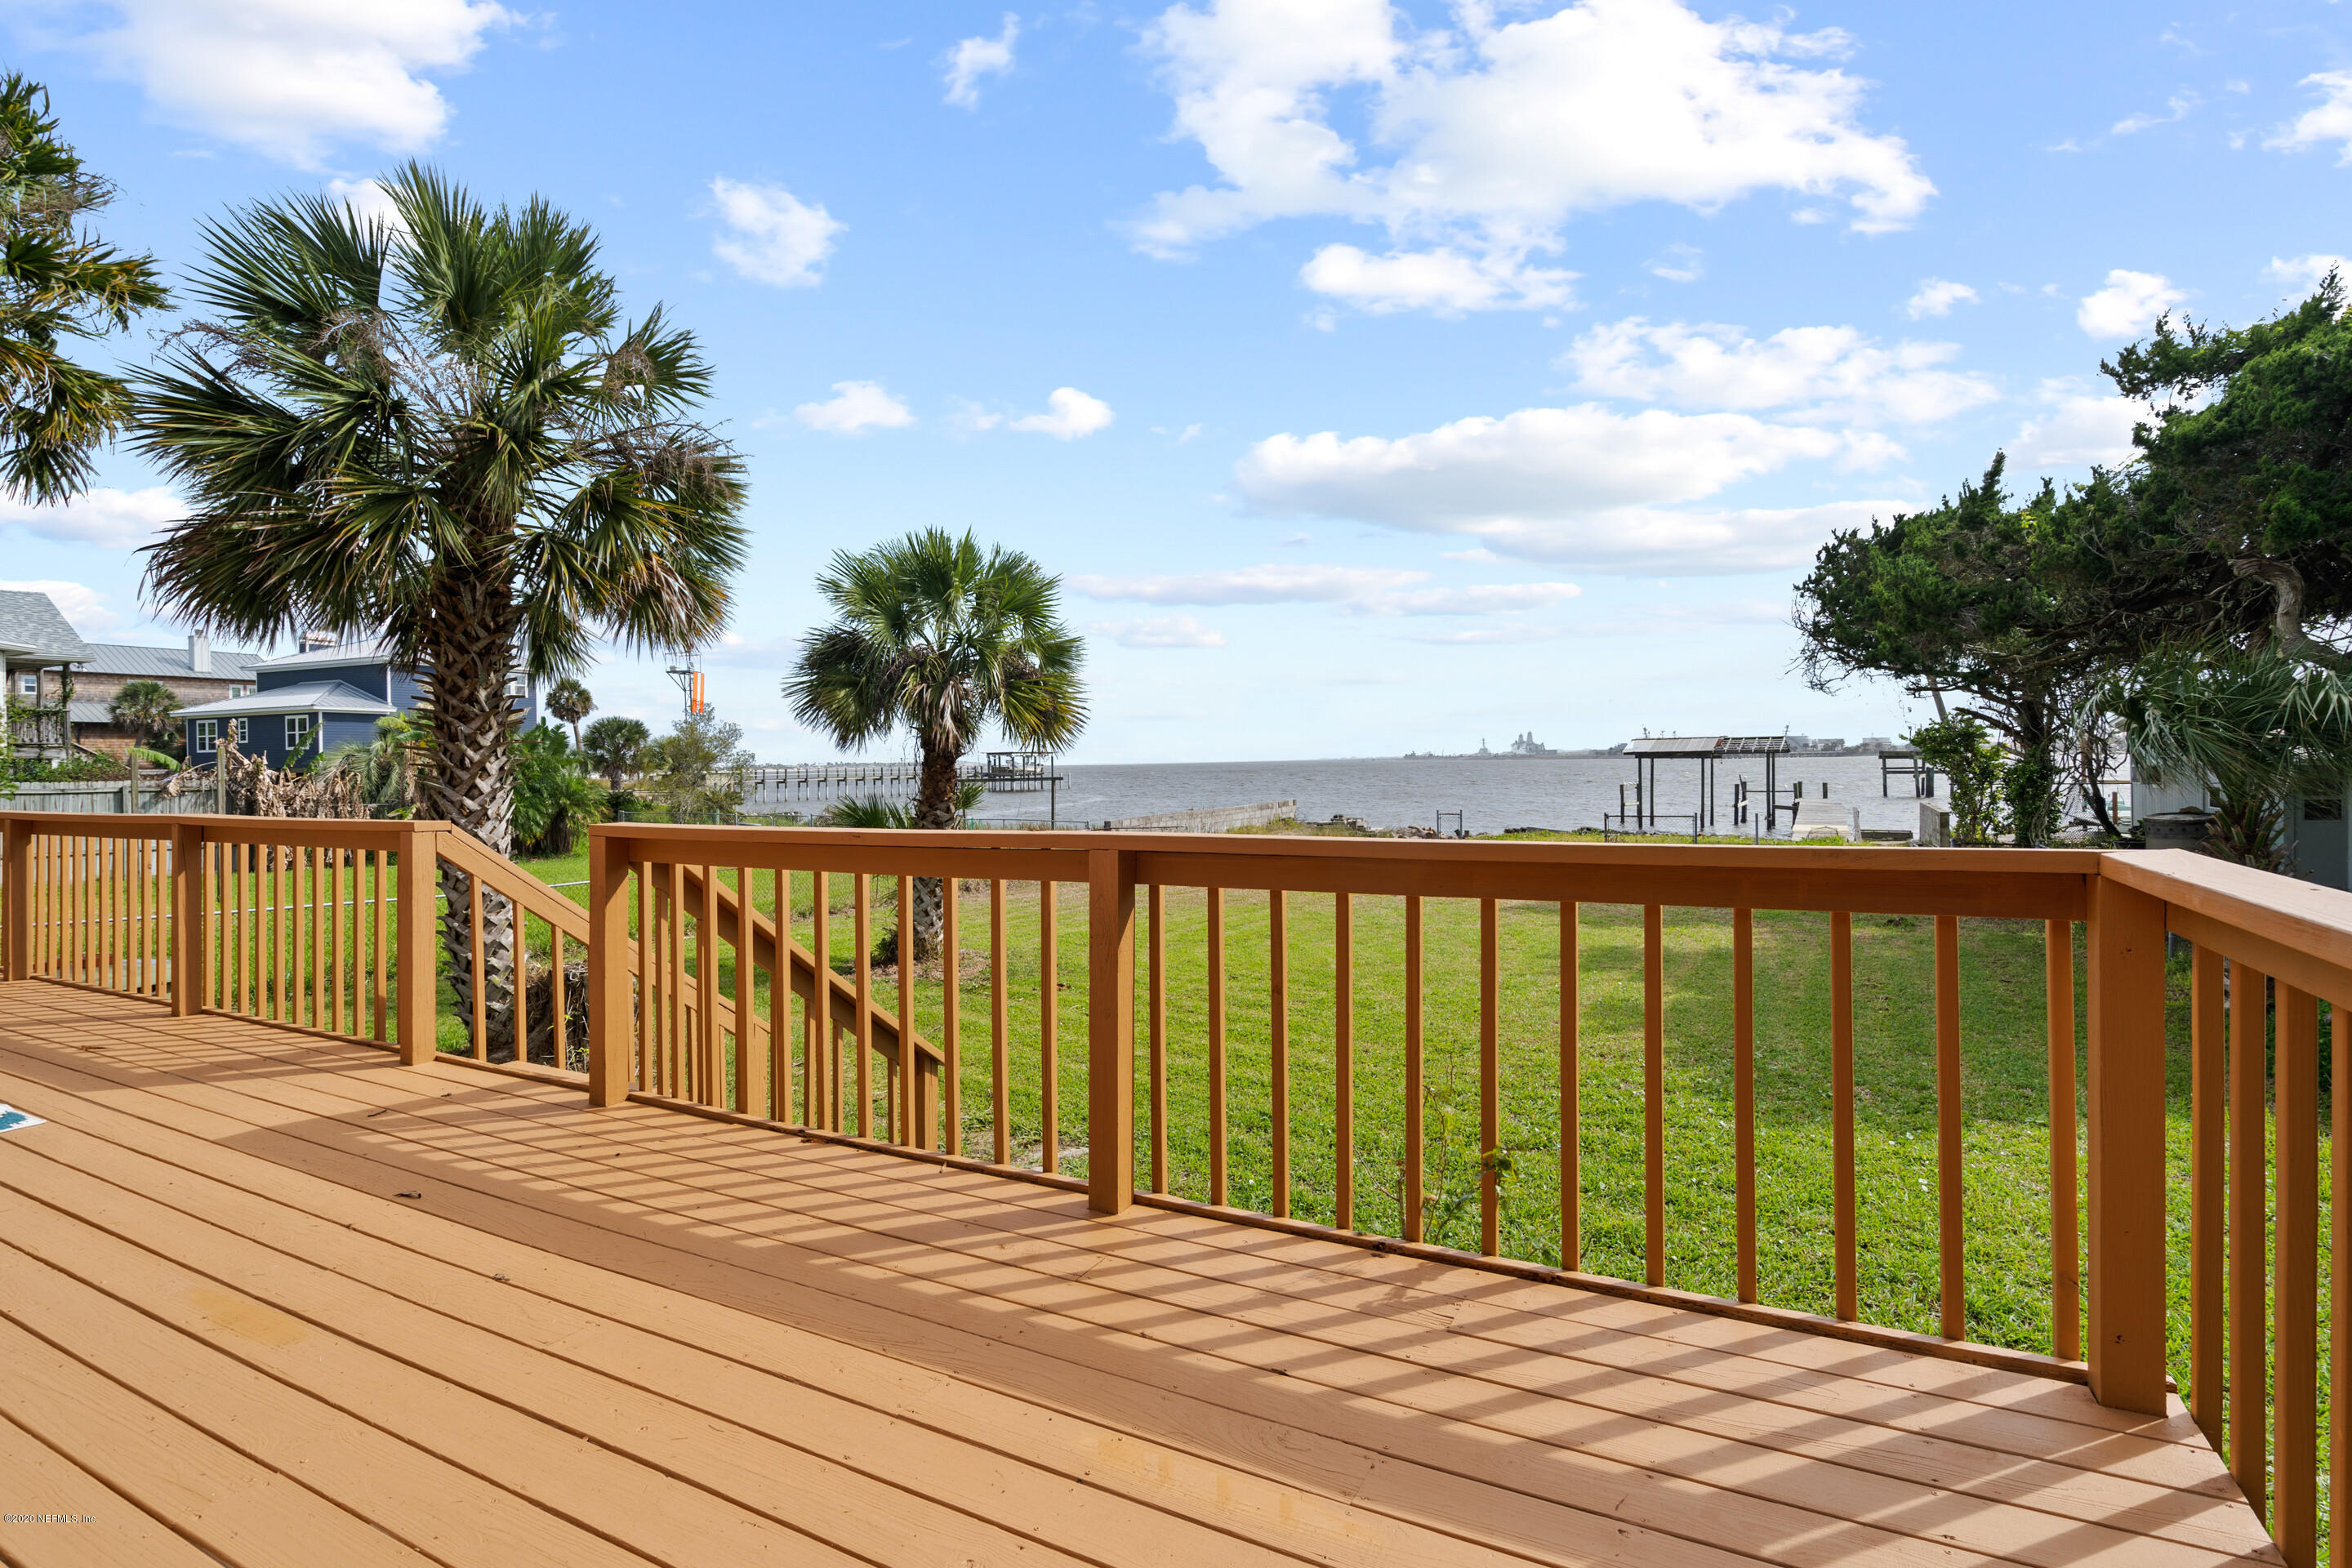 10138 HECKSCHER, JACKSONVILLE, FLORIDA 32226, 2 Bedrooms Bedrooms, ,2 BathroomsBathrooms,Residential,For sale,HECKSCHER,1082364